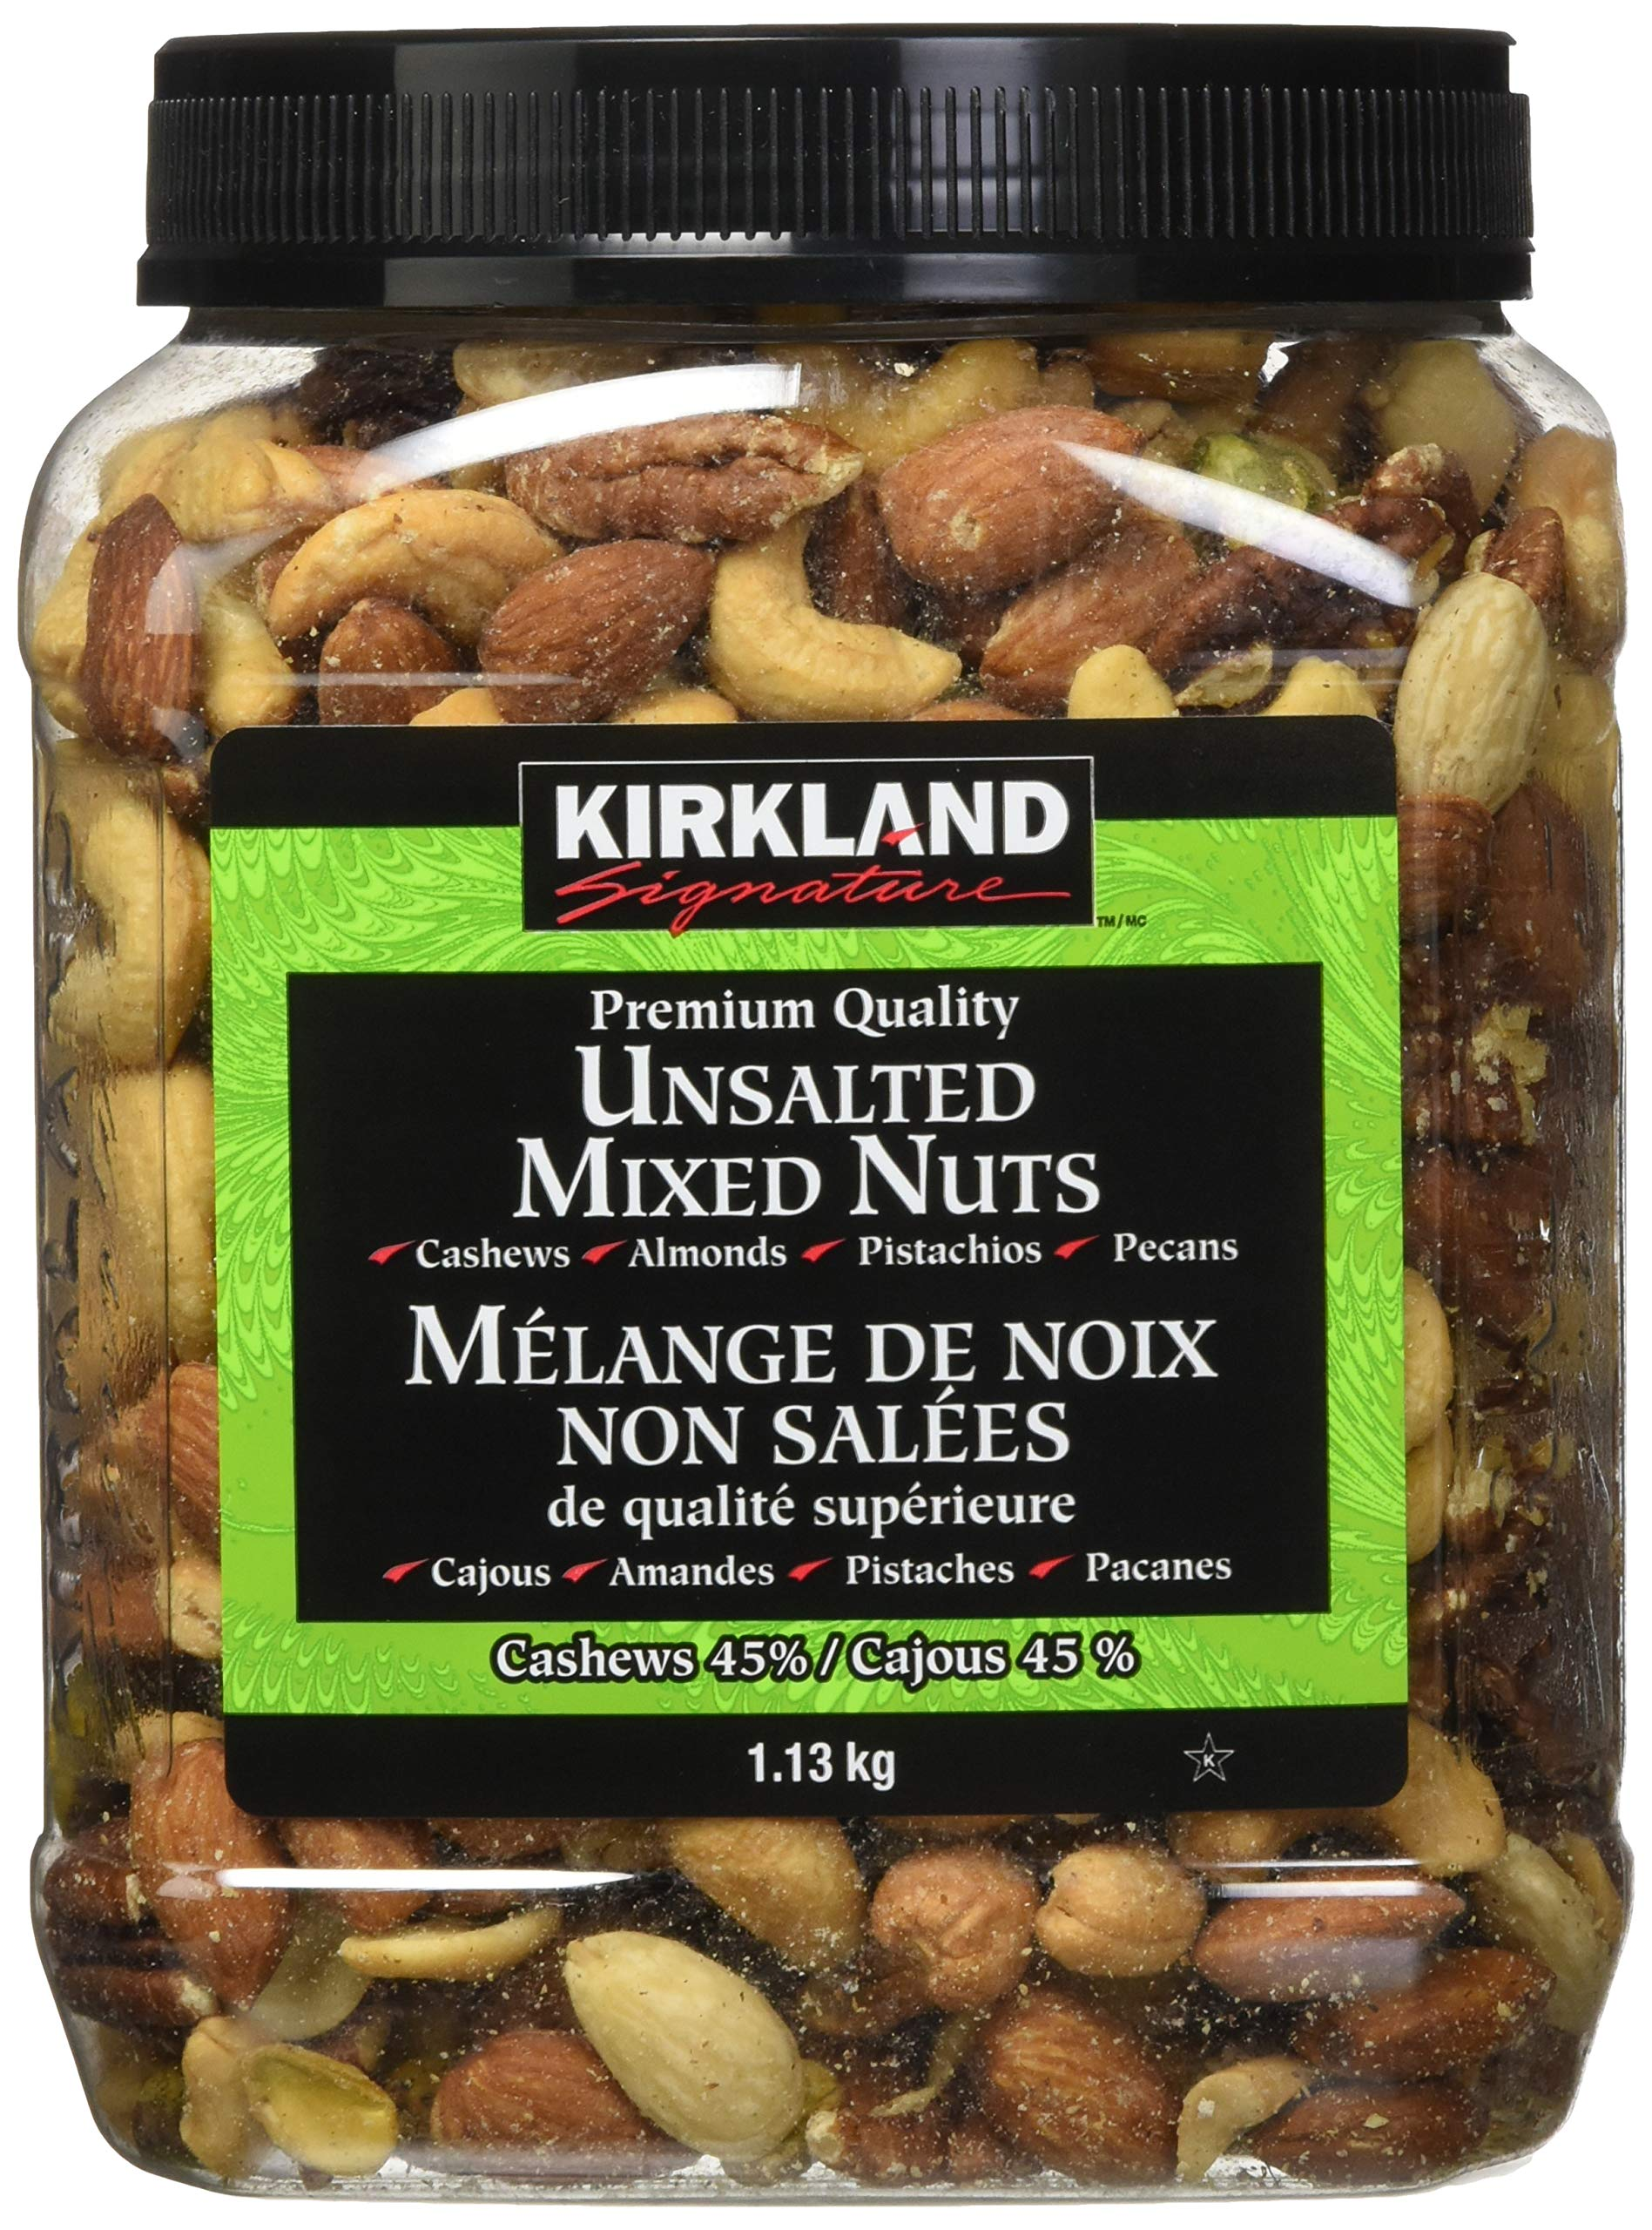 Kirkland Signature Extra Fancy Unsalted Mixed Nuts 2.5 (LB) by Kirkland Signature